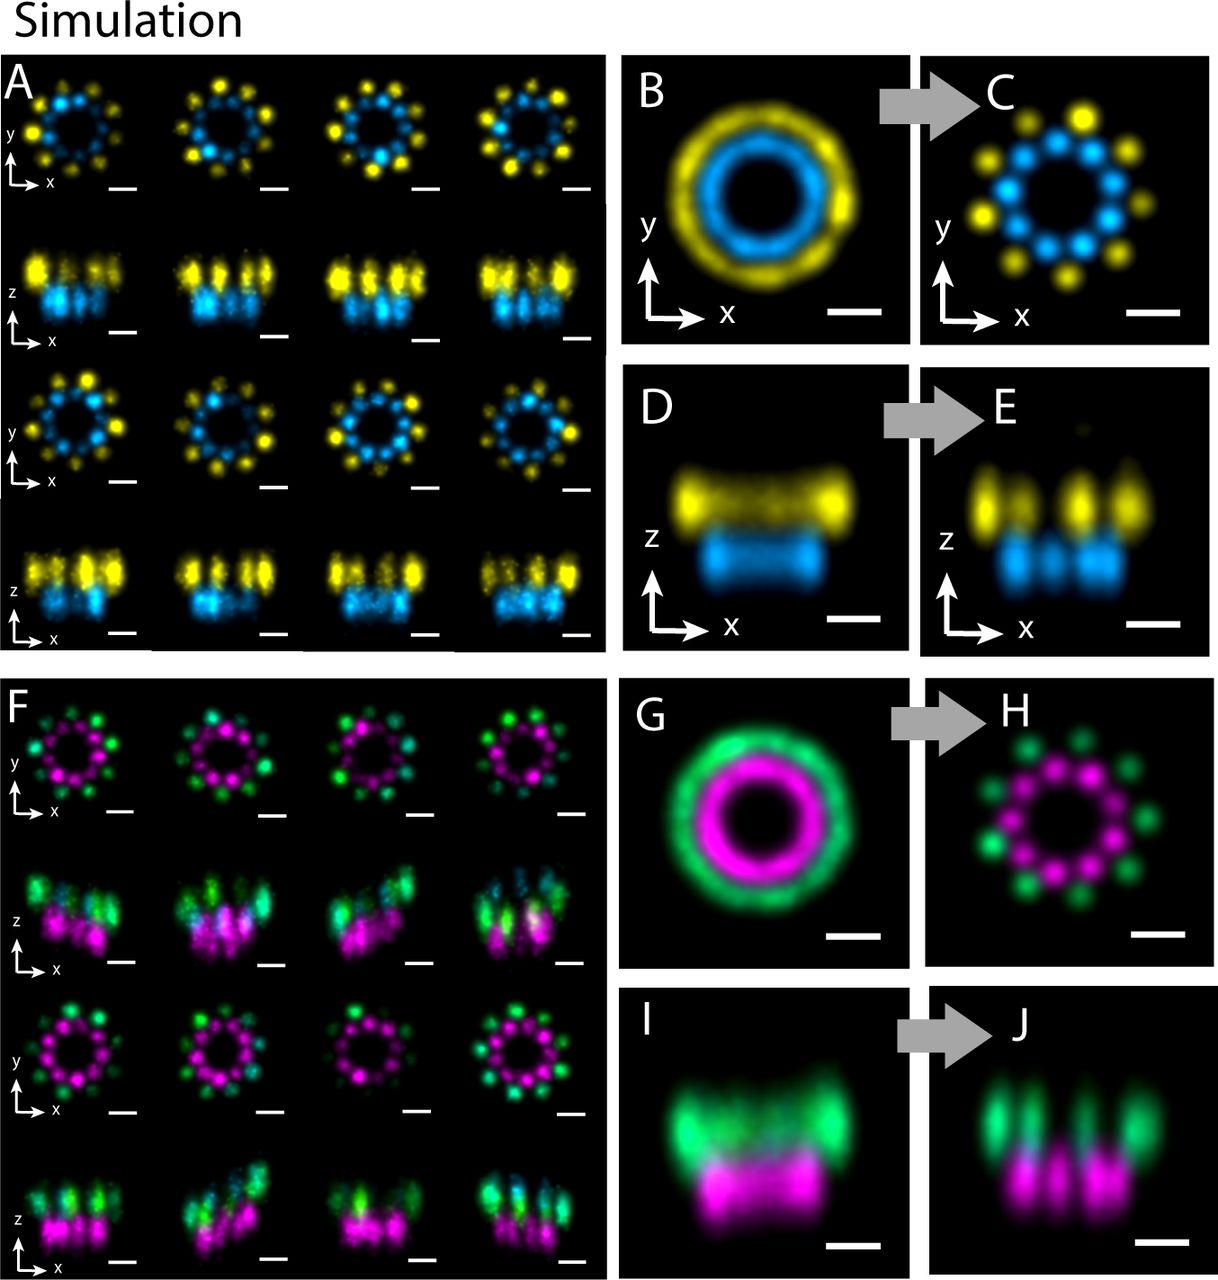 Deformed Alignment of Super-Resolution Images for Semi